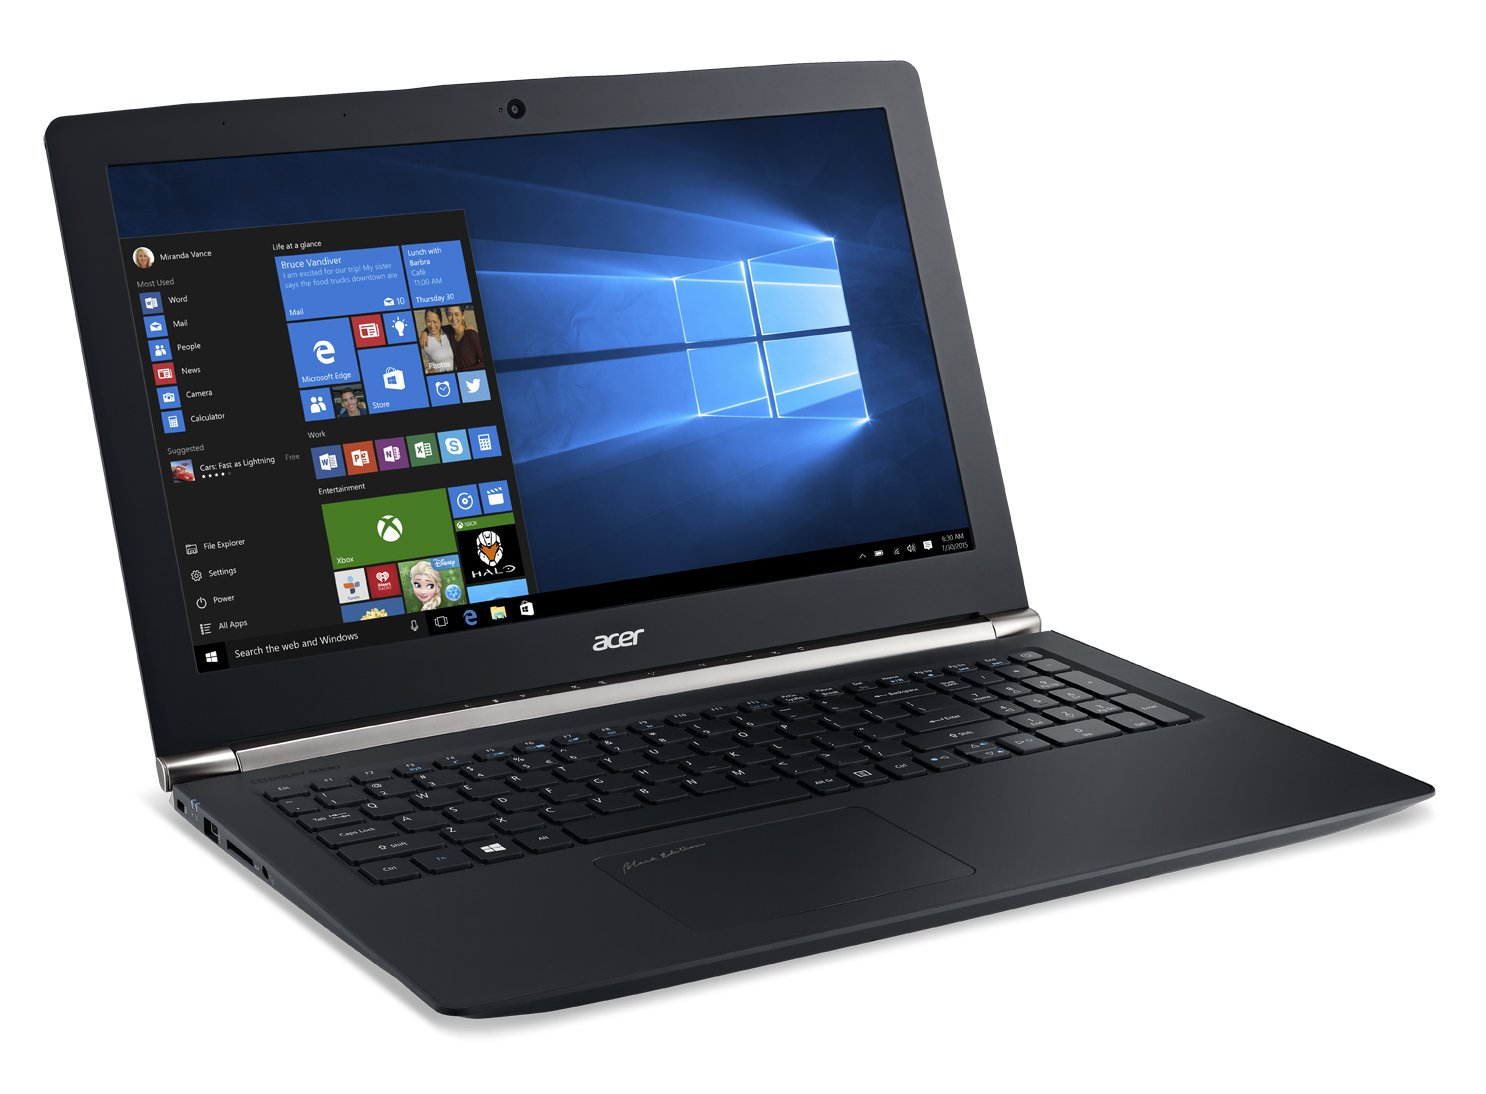 Acer Aspire 5541G ALPS Touchpad Update